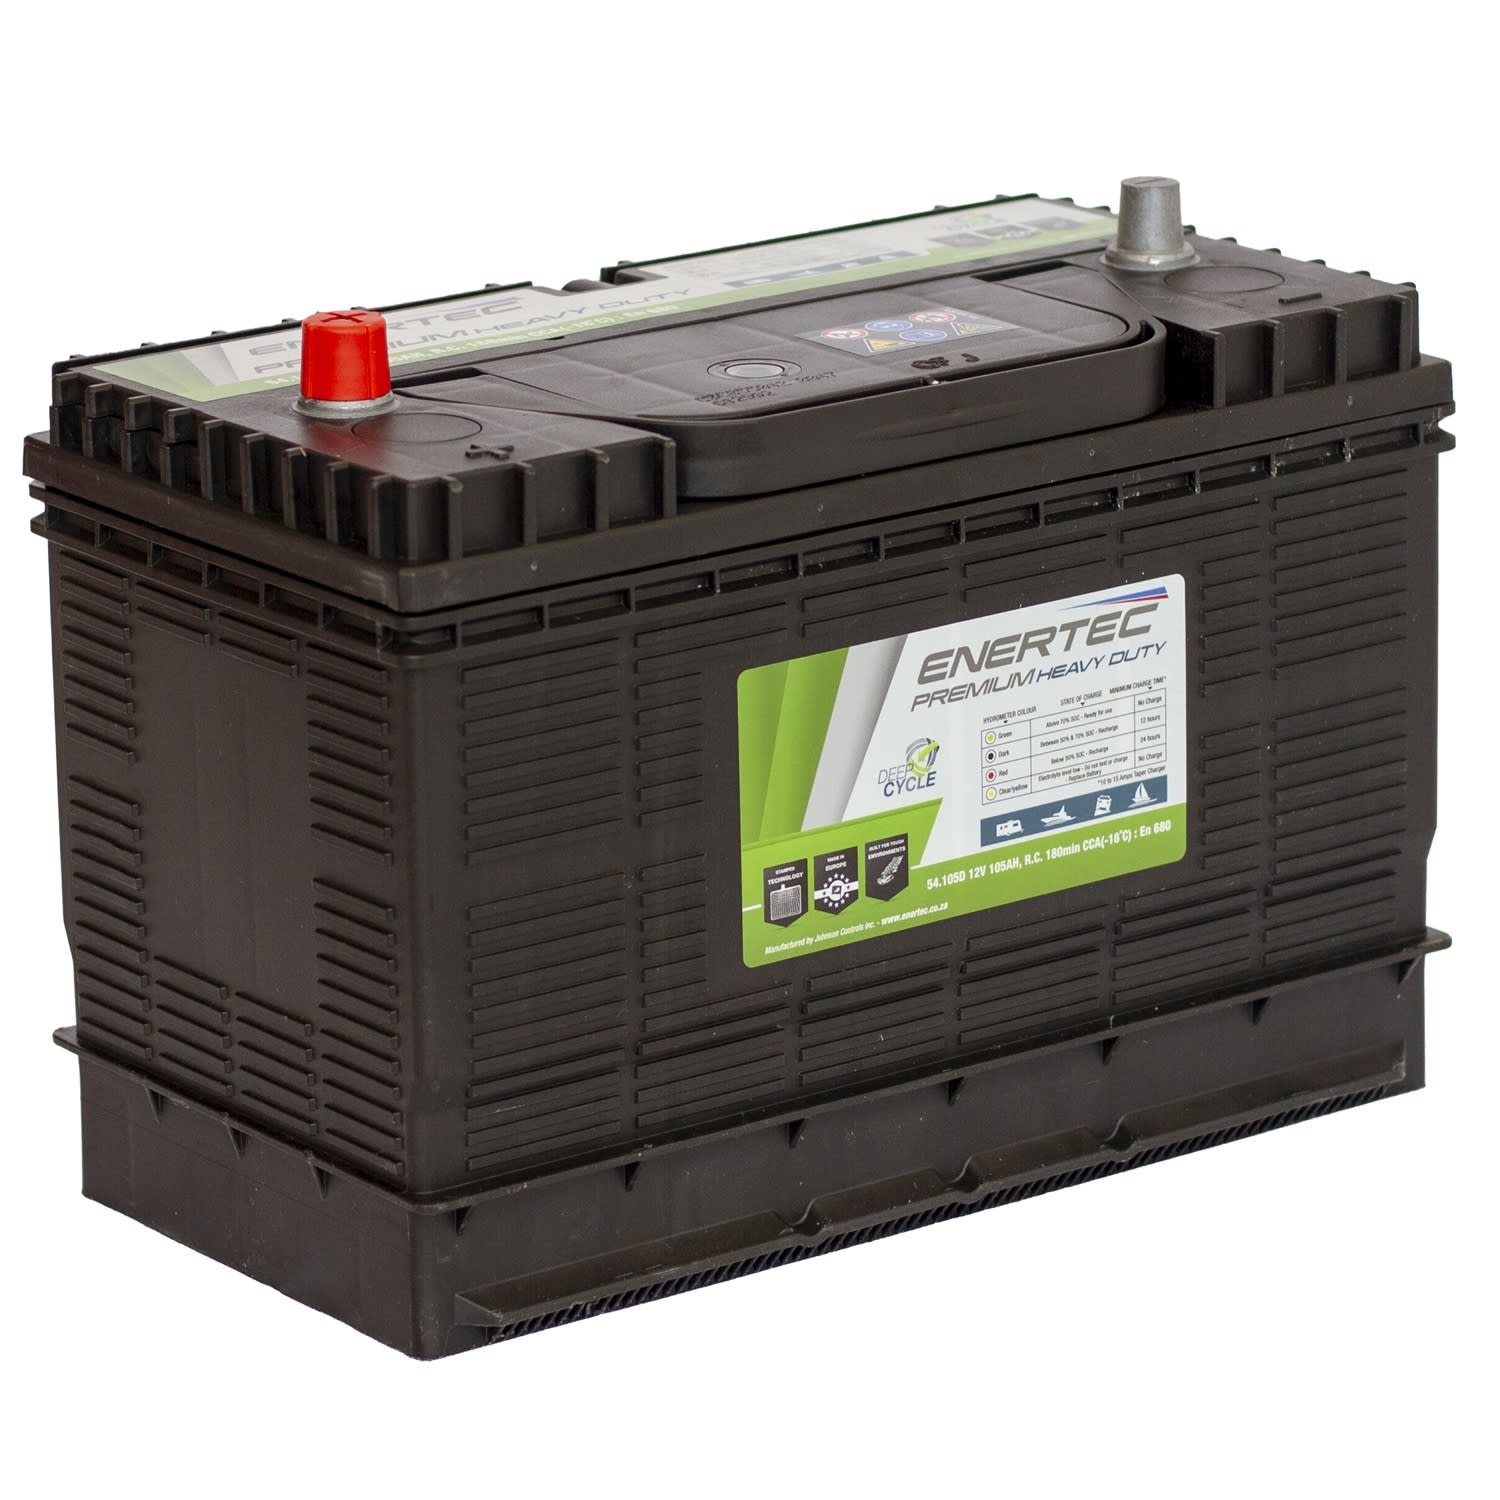 Enertec 105 Amp/hr Leisure Battery